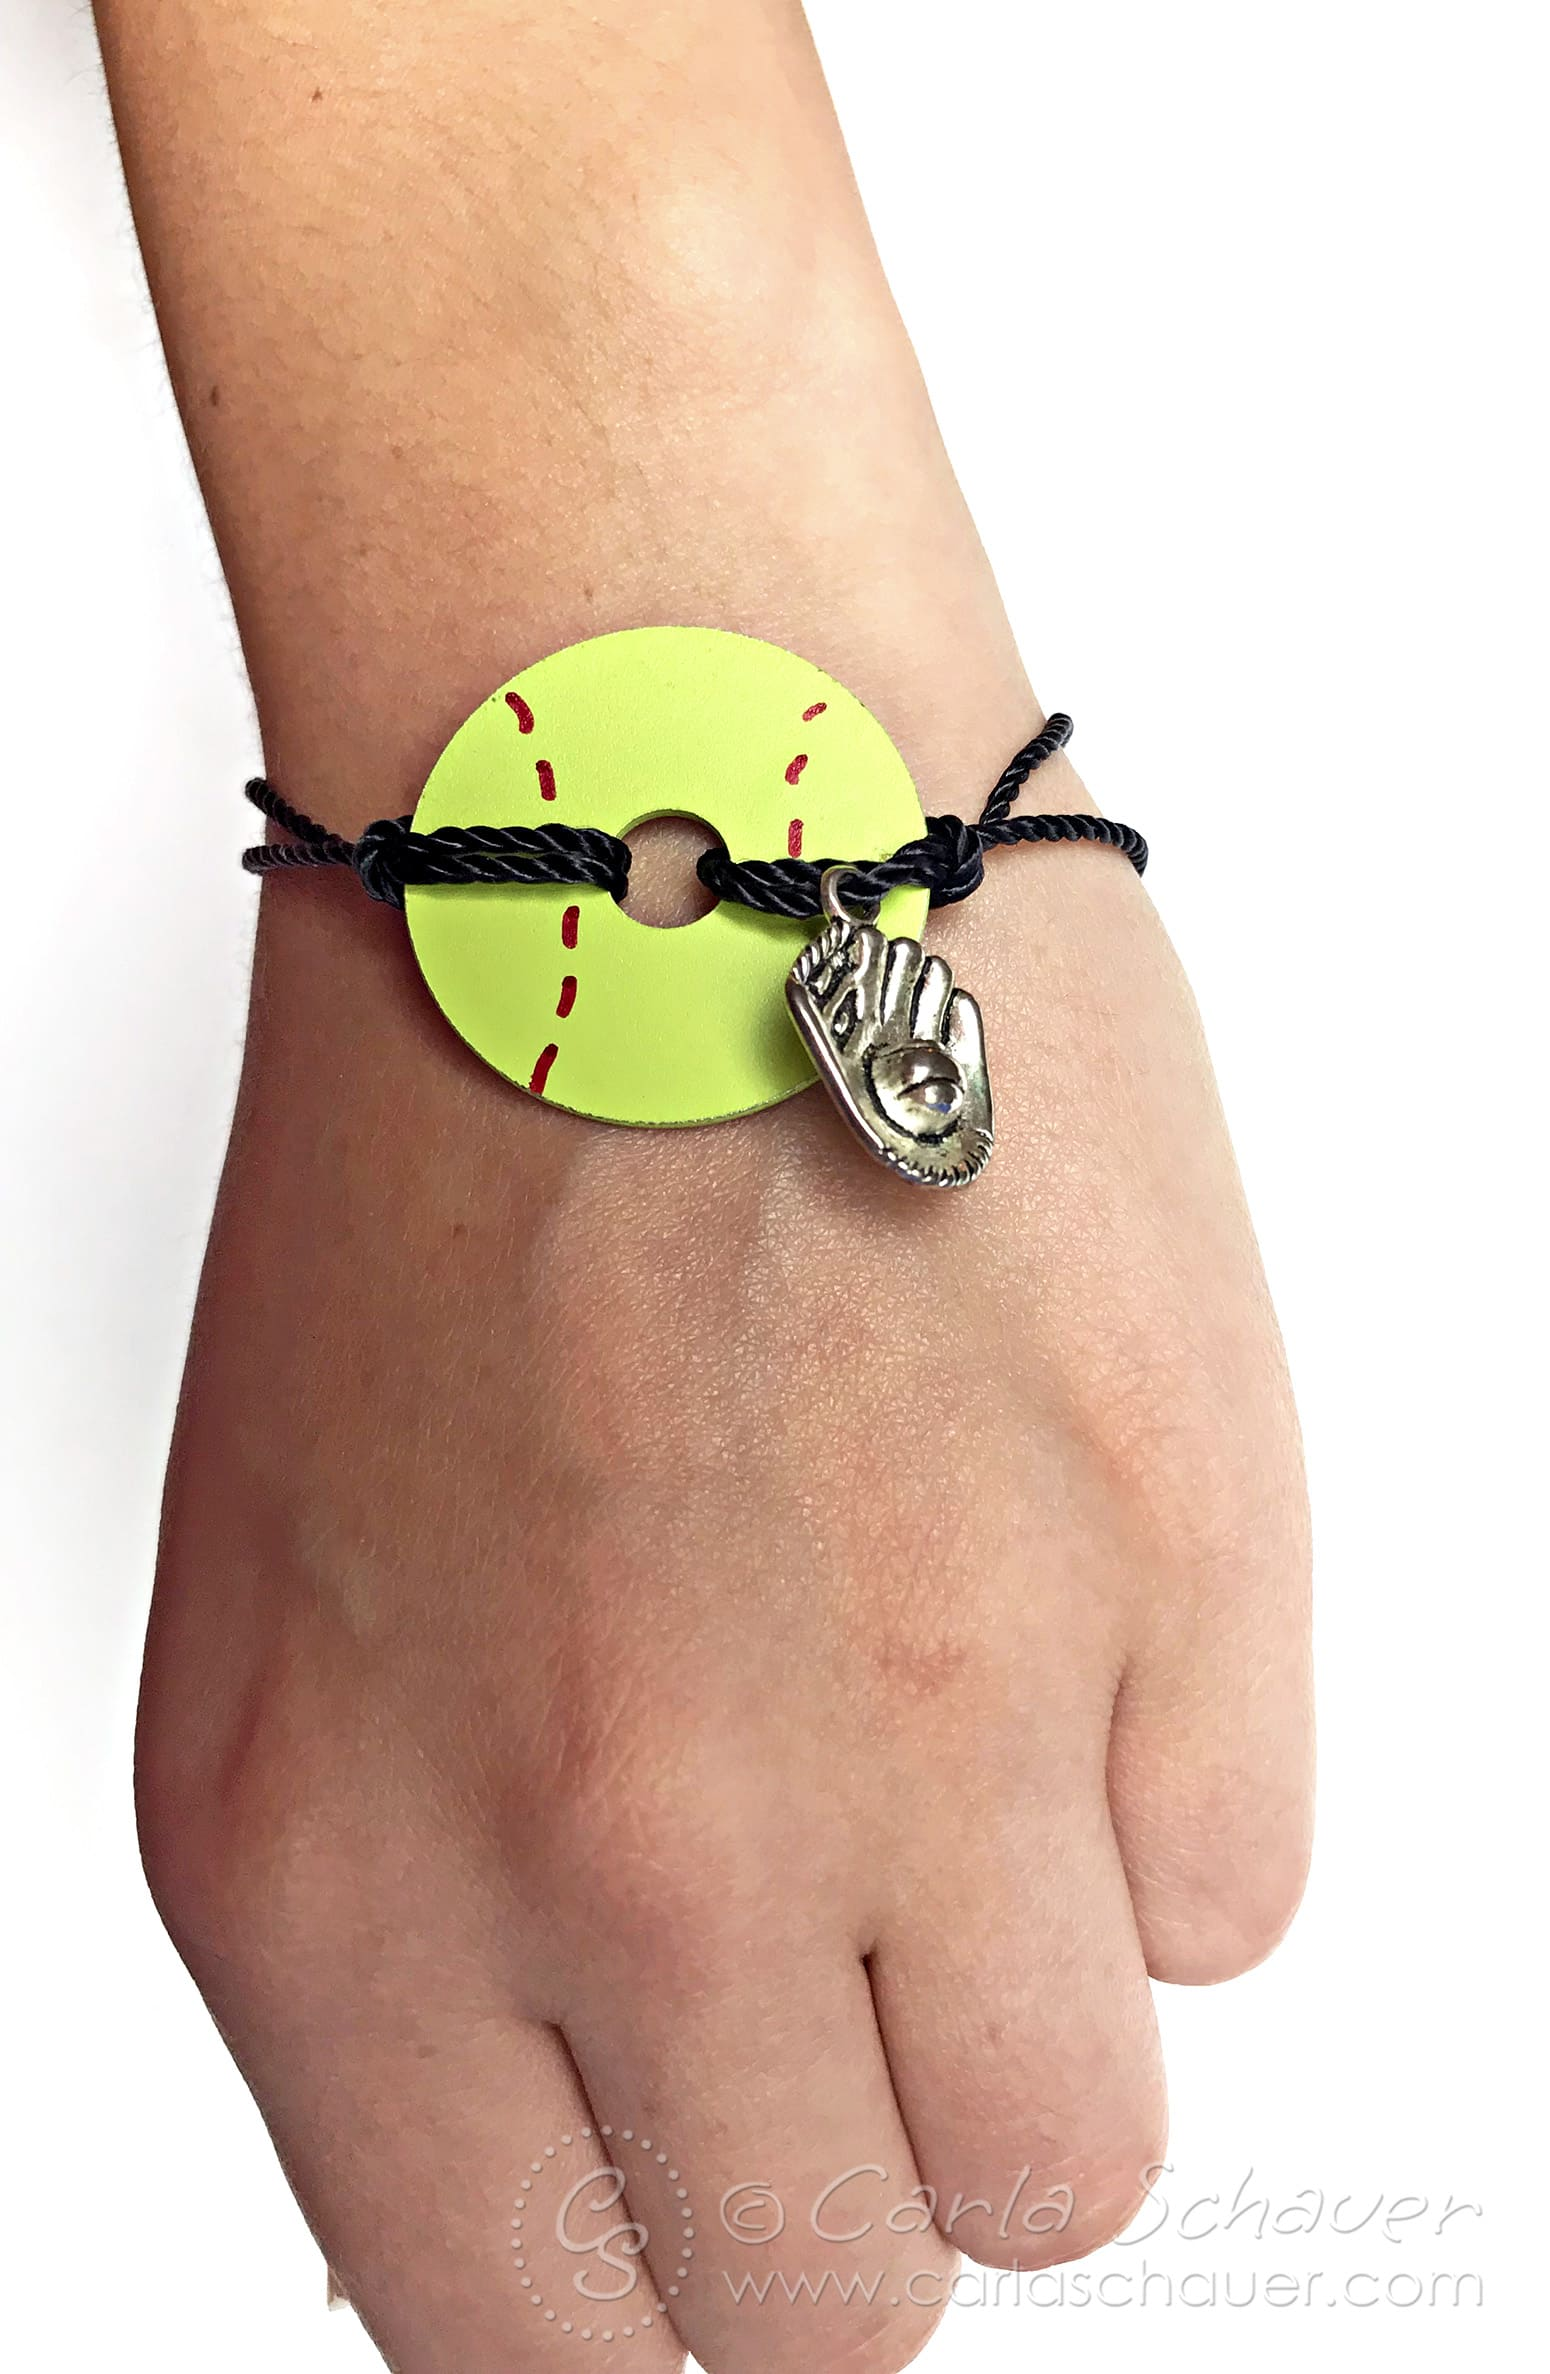 Softball bracelet made from washer, worn on wrist.